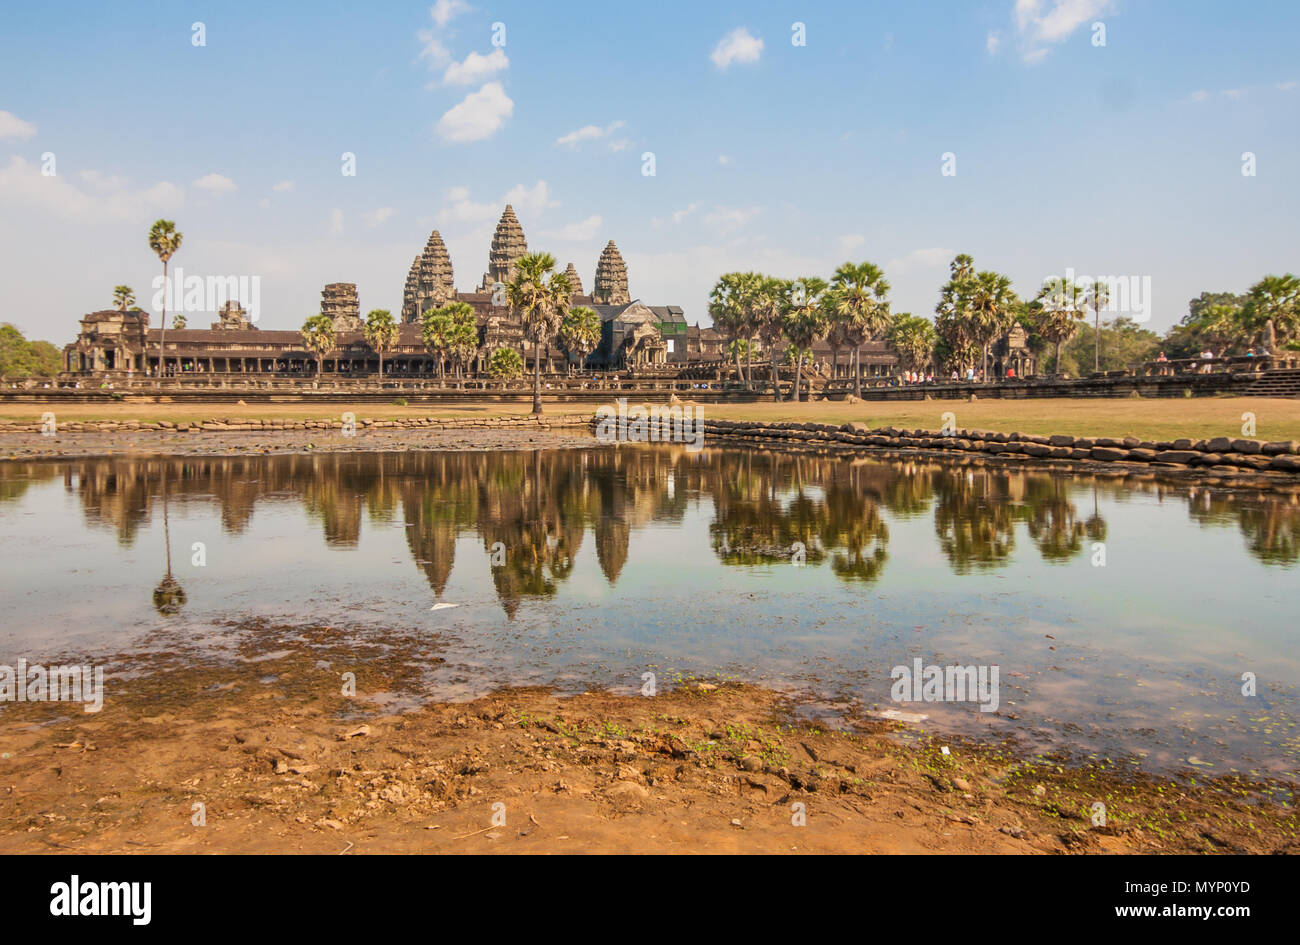 Angkor Wat, Cambodia - one the largest religious monument in the world, and the most famous landmark of the country. In the picture the main temple - Stock Image